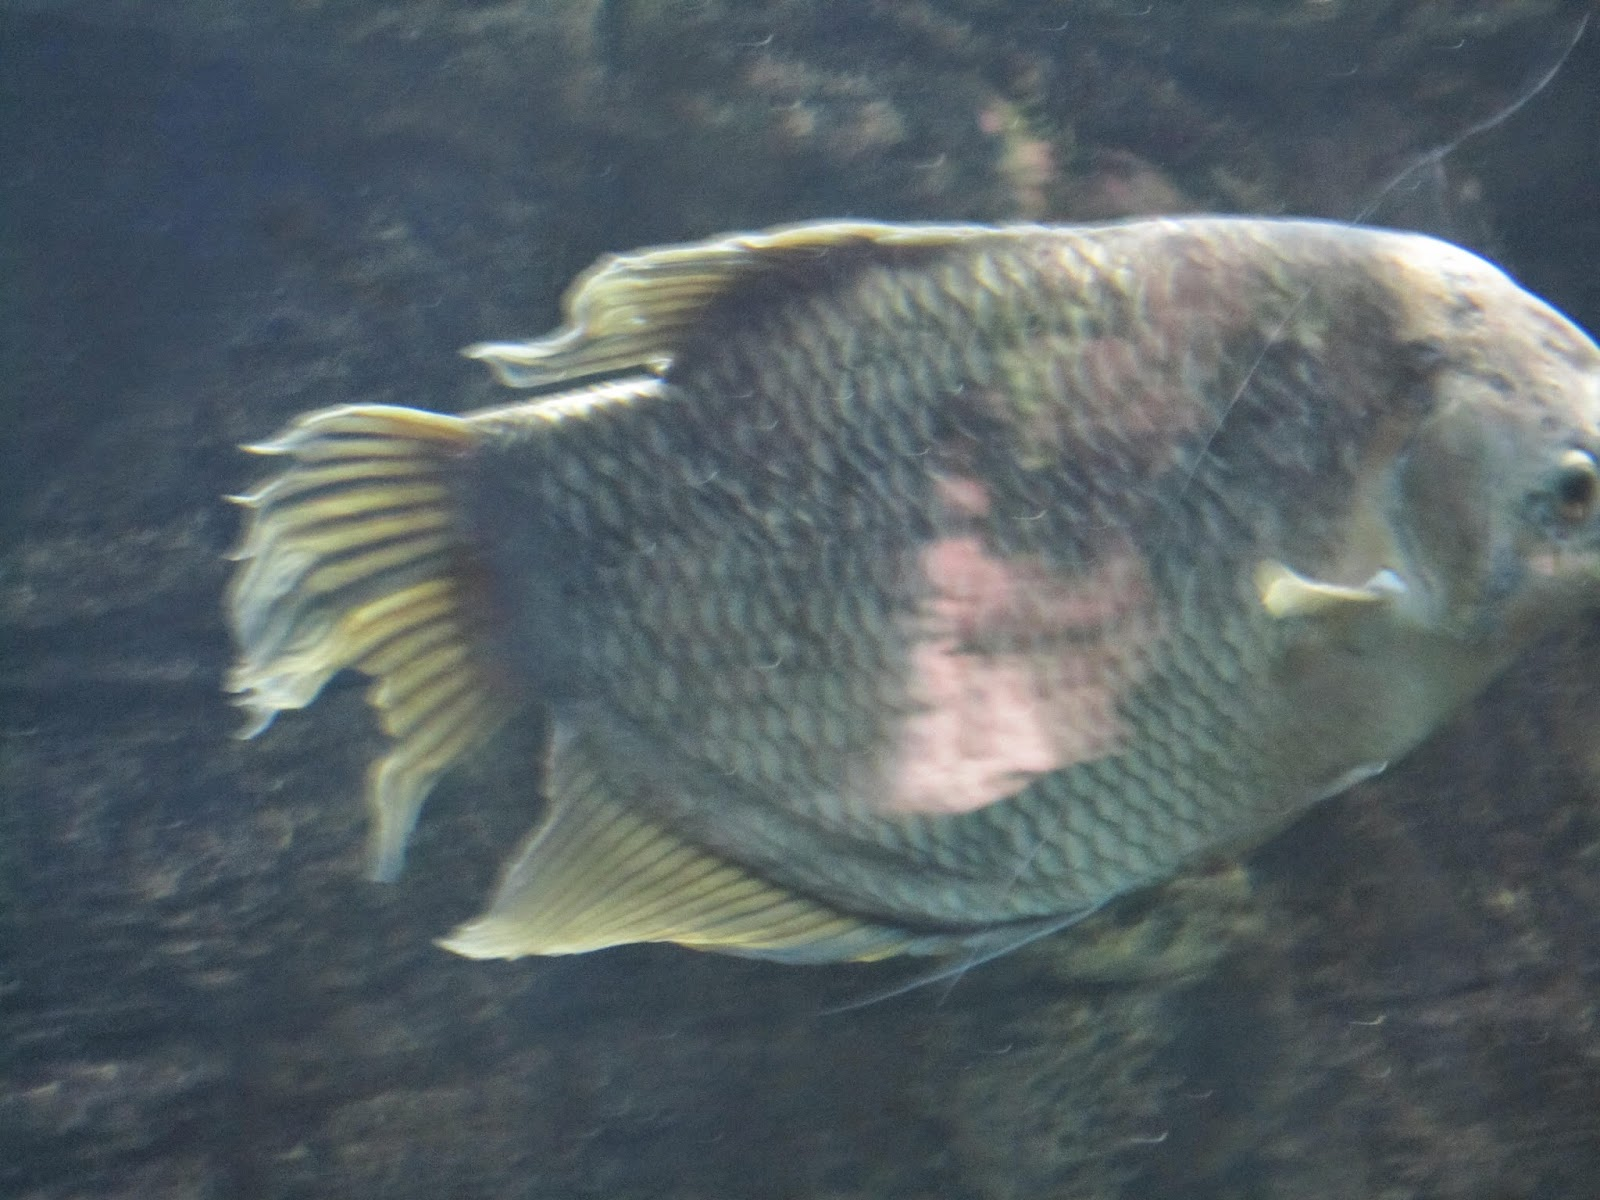 fish, zoo, Toronto Zoo, animals, animal photography